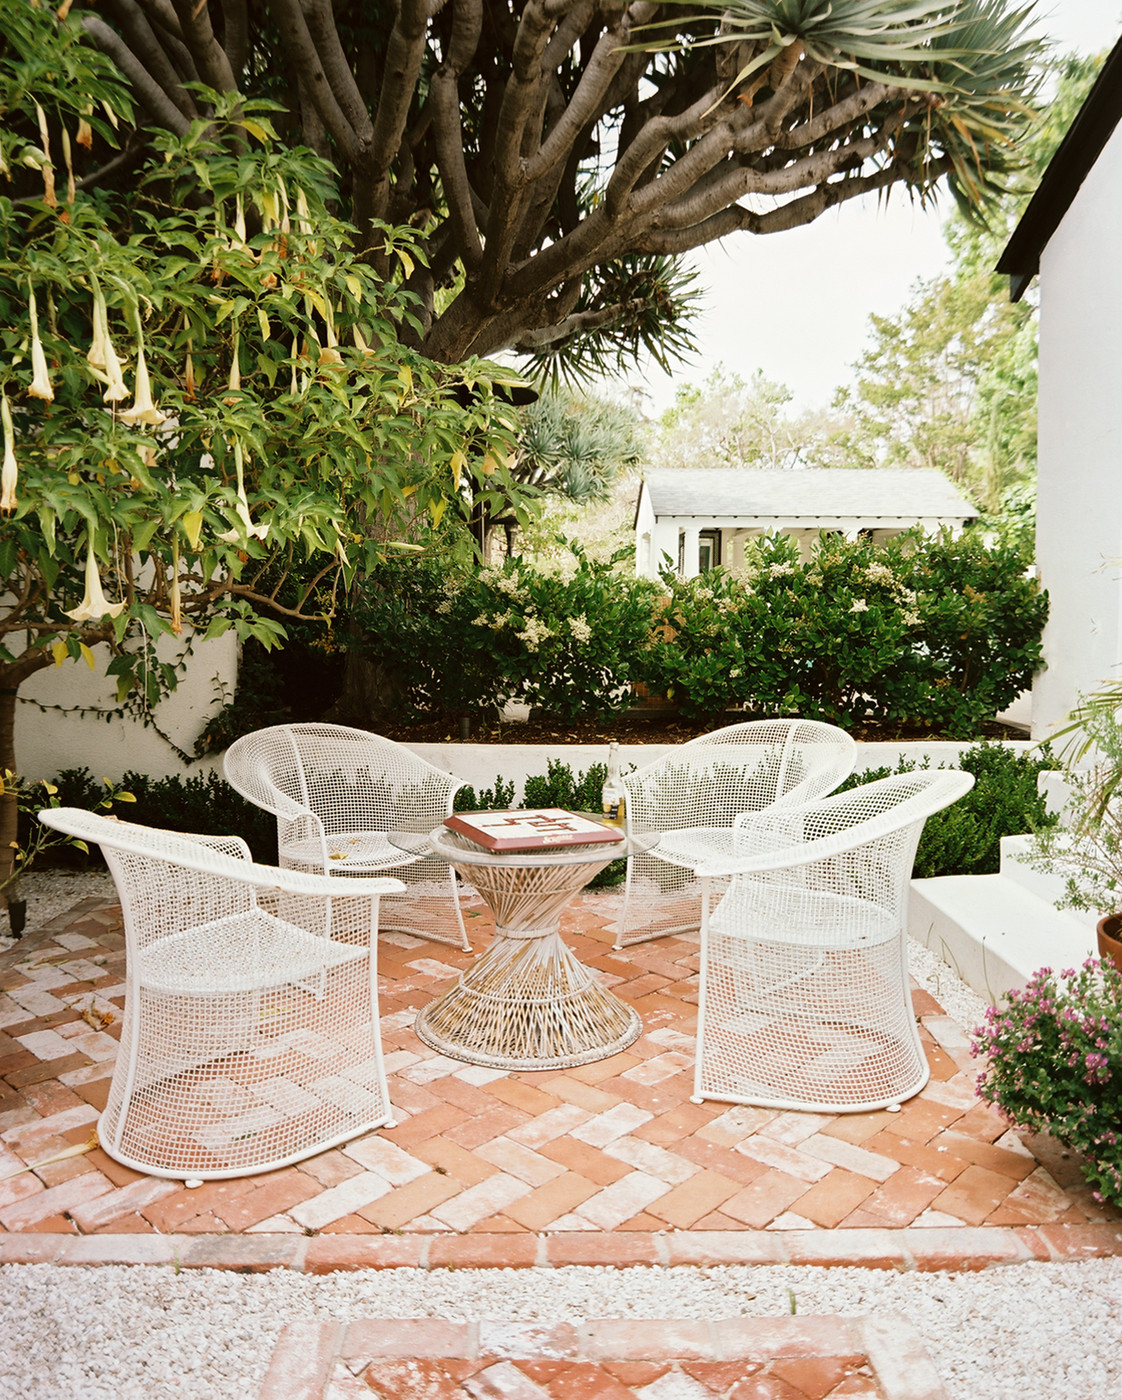 Outdoor patio with modern seating (photo via Lonny)